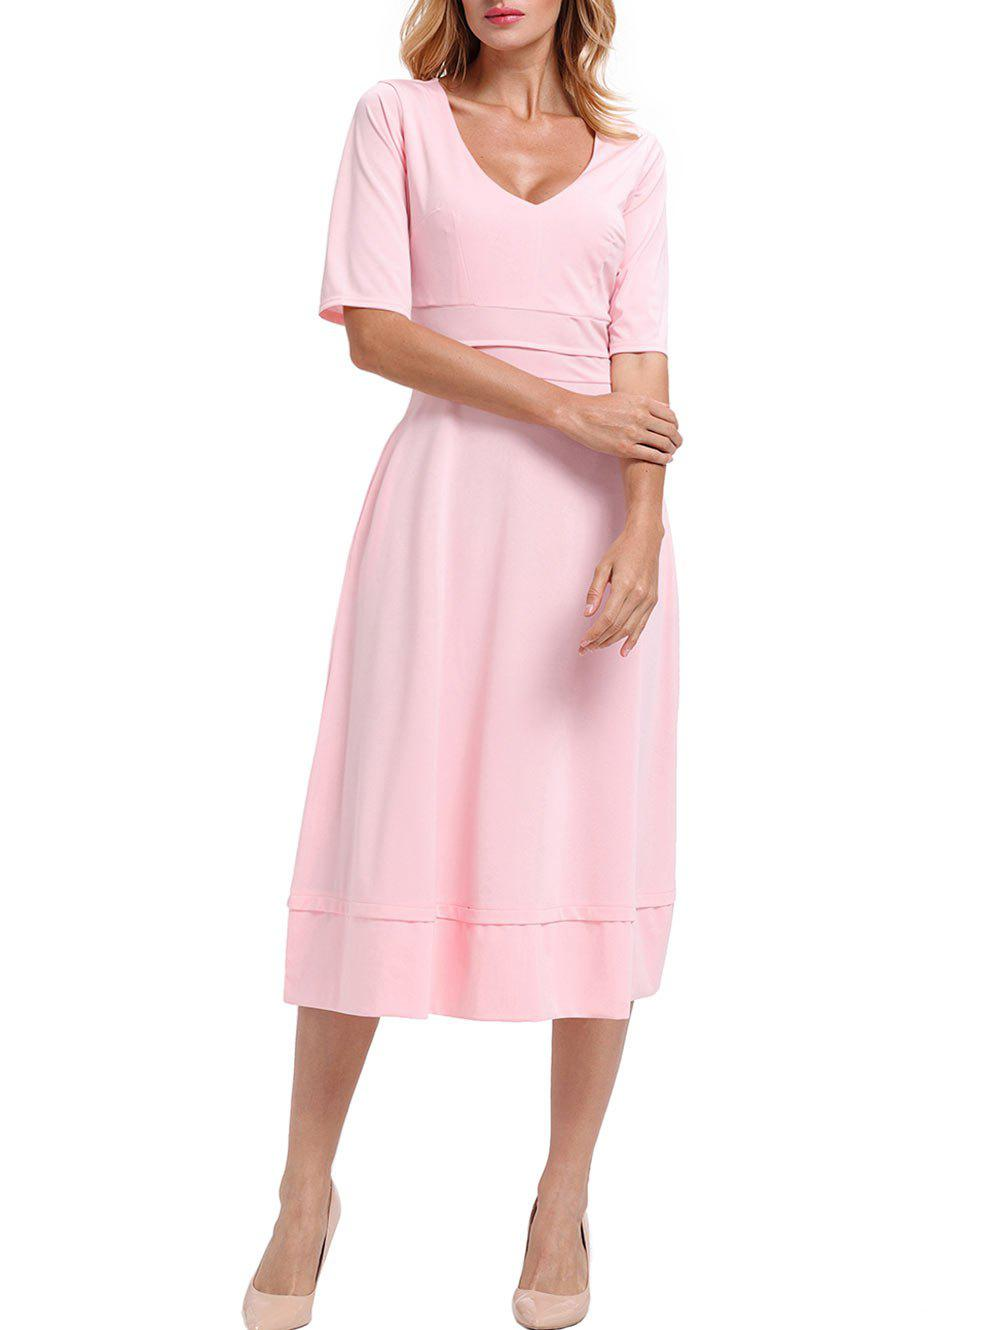 V Neck Half Sleeve Tea Length Dress - PINK M